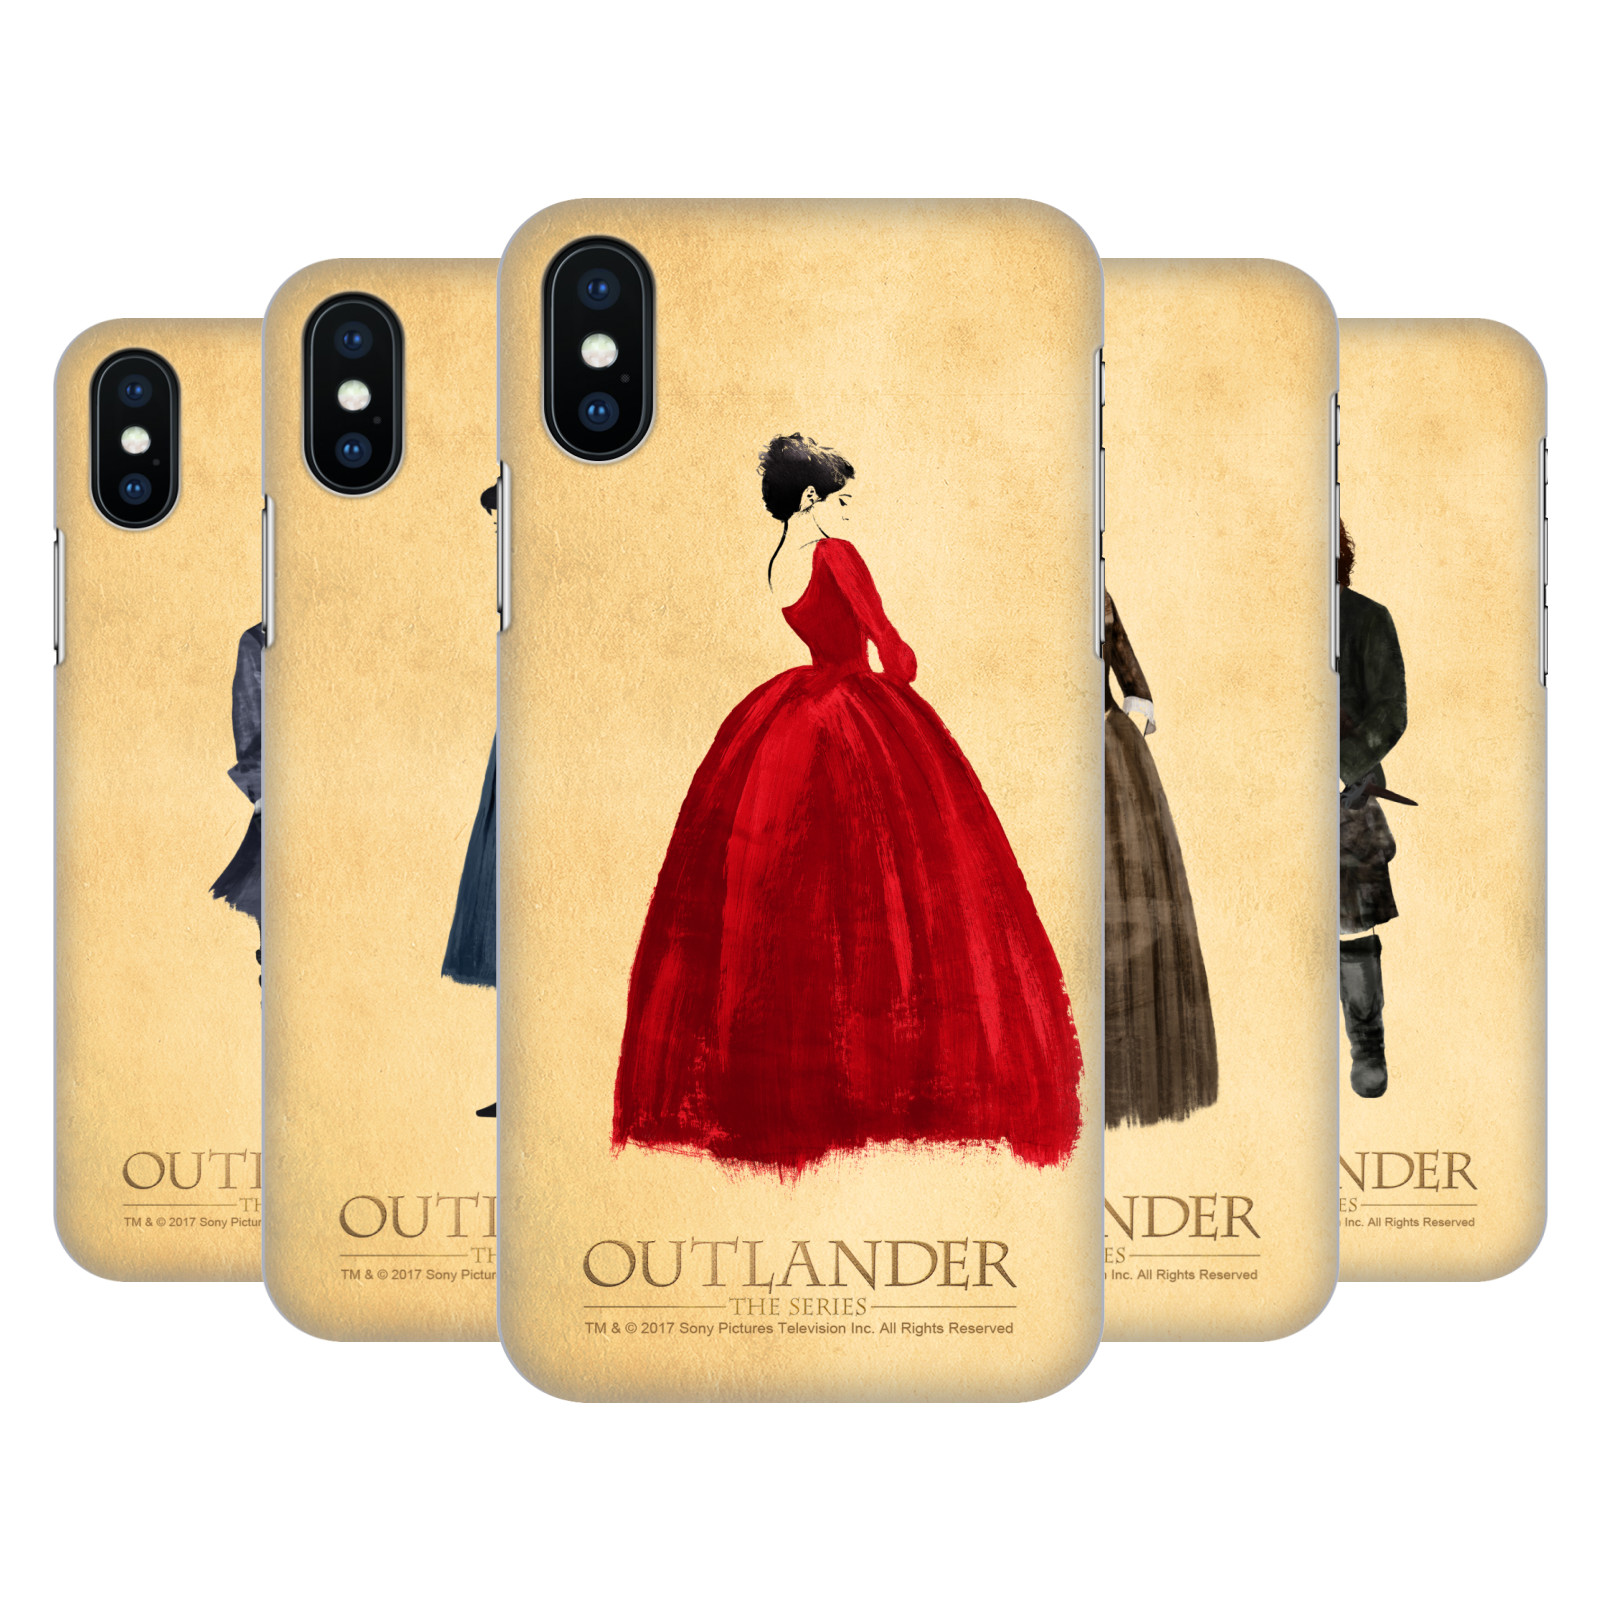 Outlander Painted Images